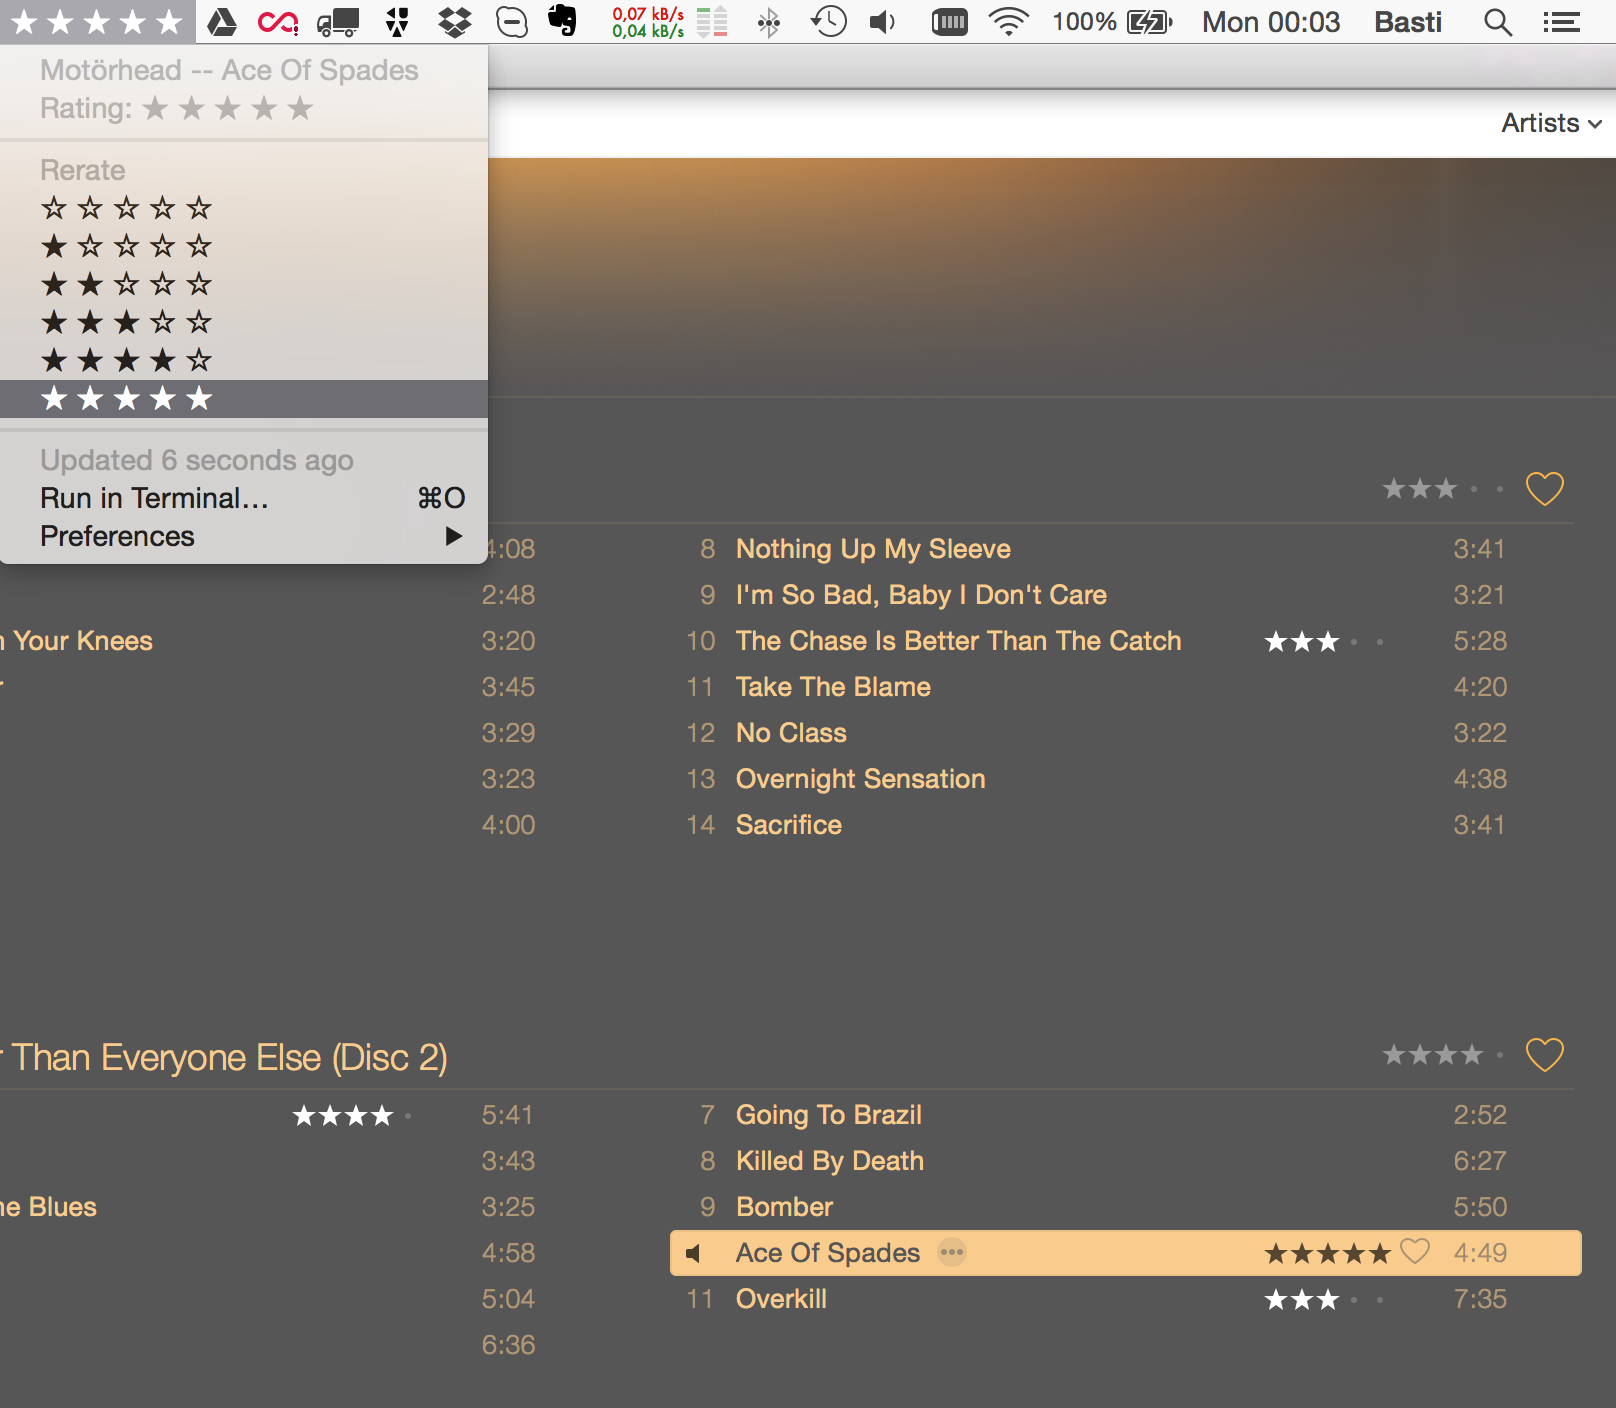 Image preview of Music Rating plugin.